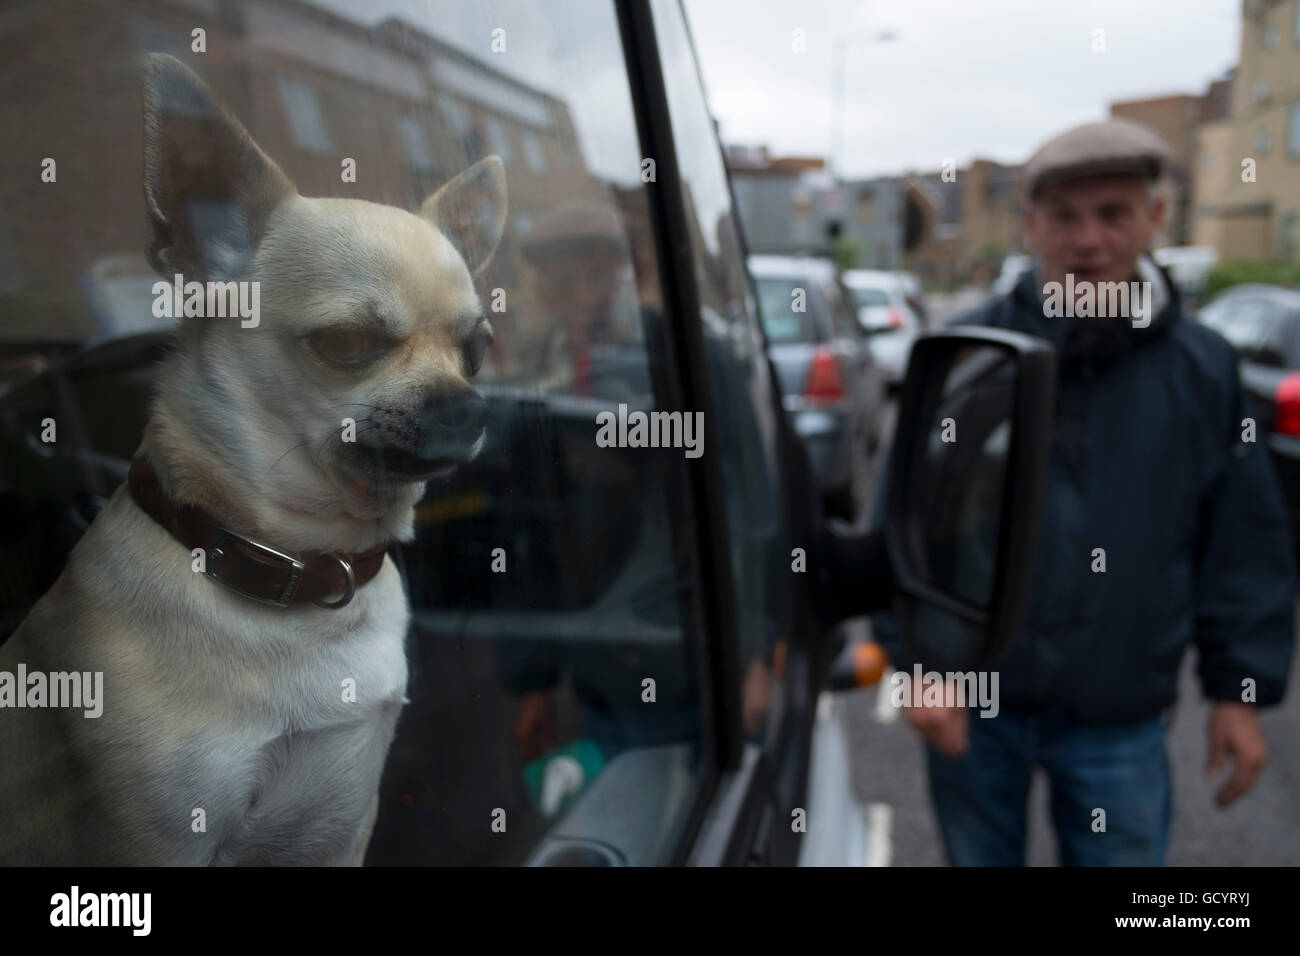 5bb08c342402c1 Chihuahua dog looking out of the window of his owners van in Hackney